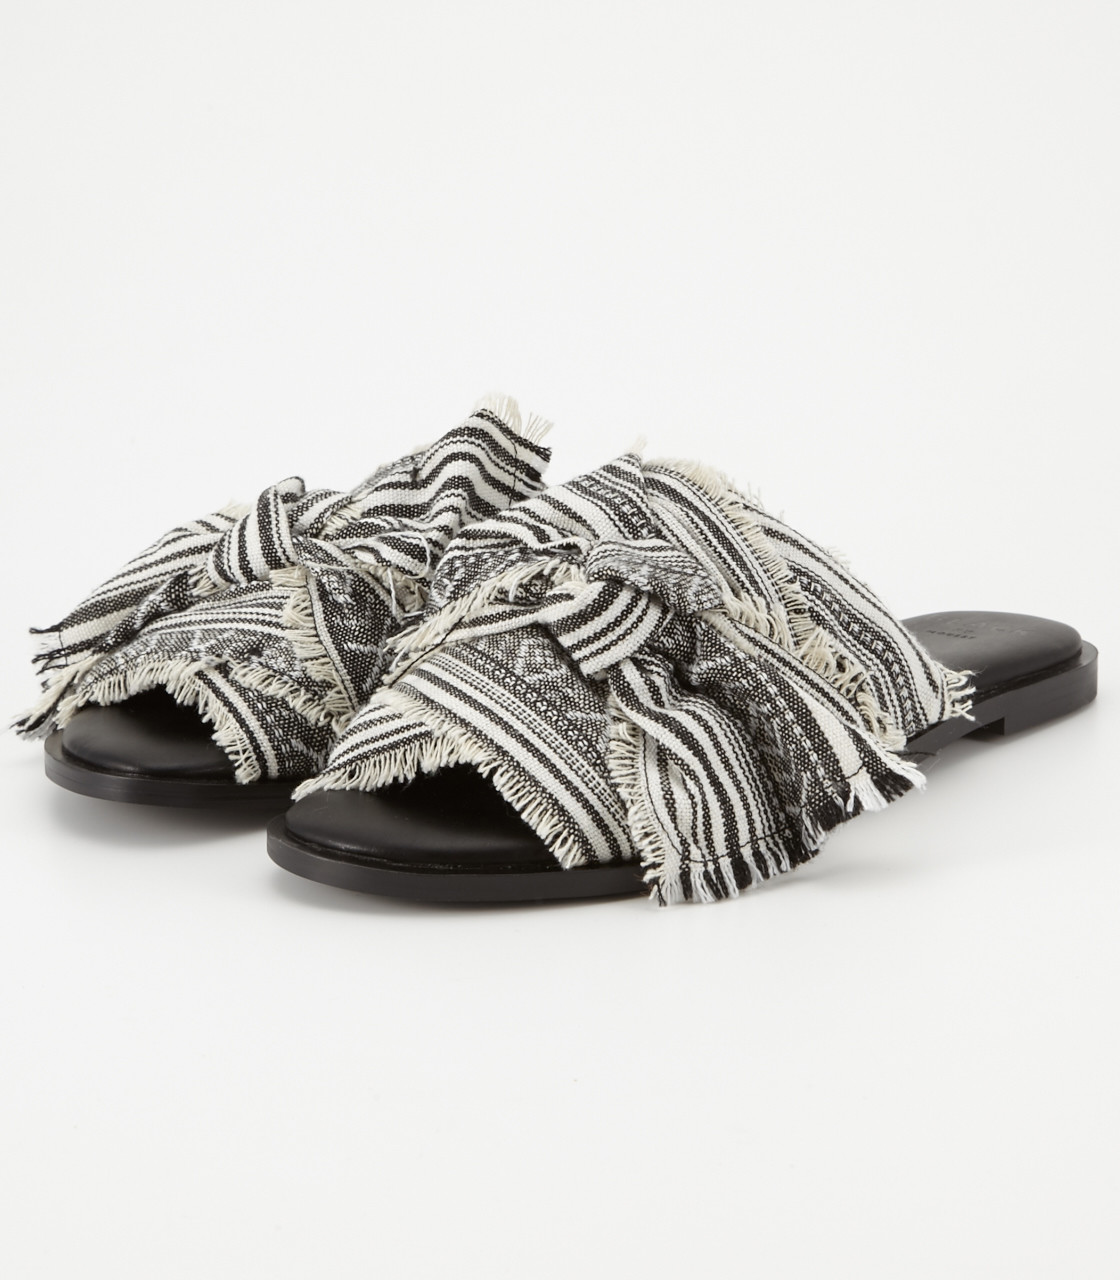 Cloth sandal